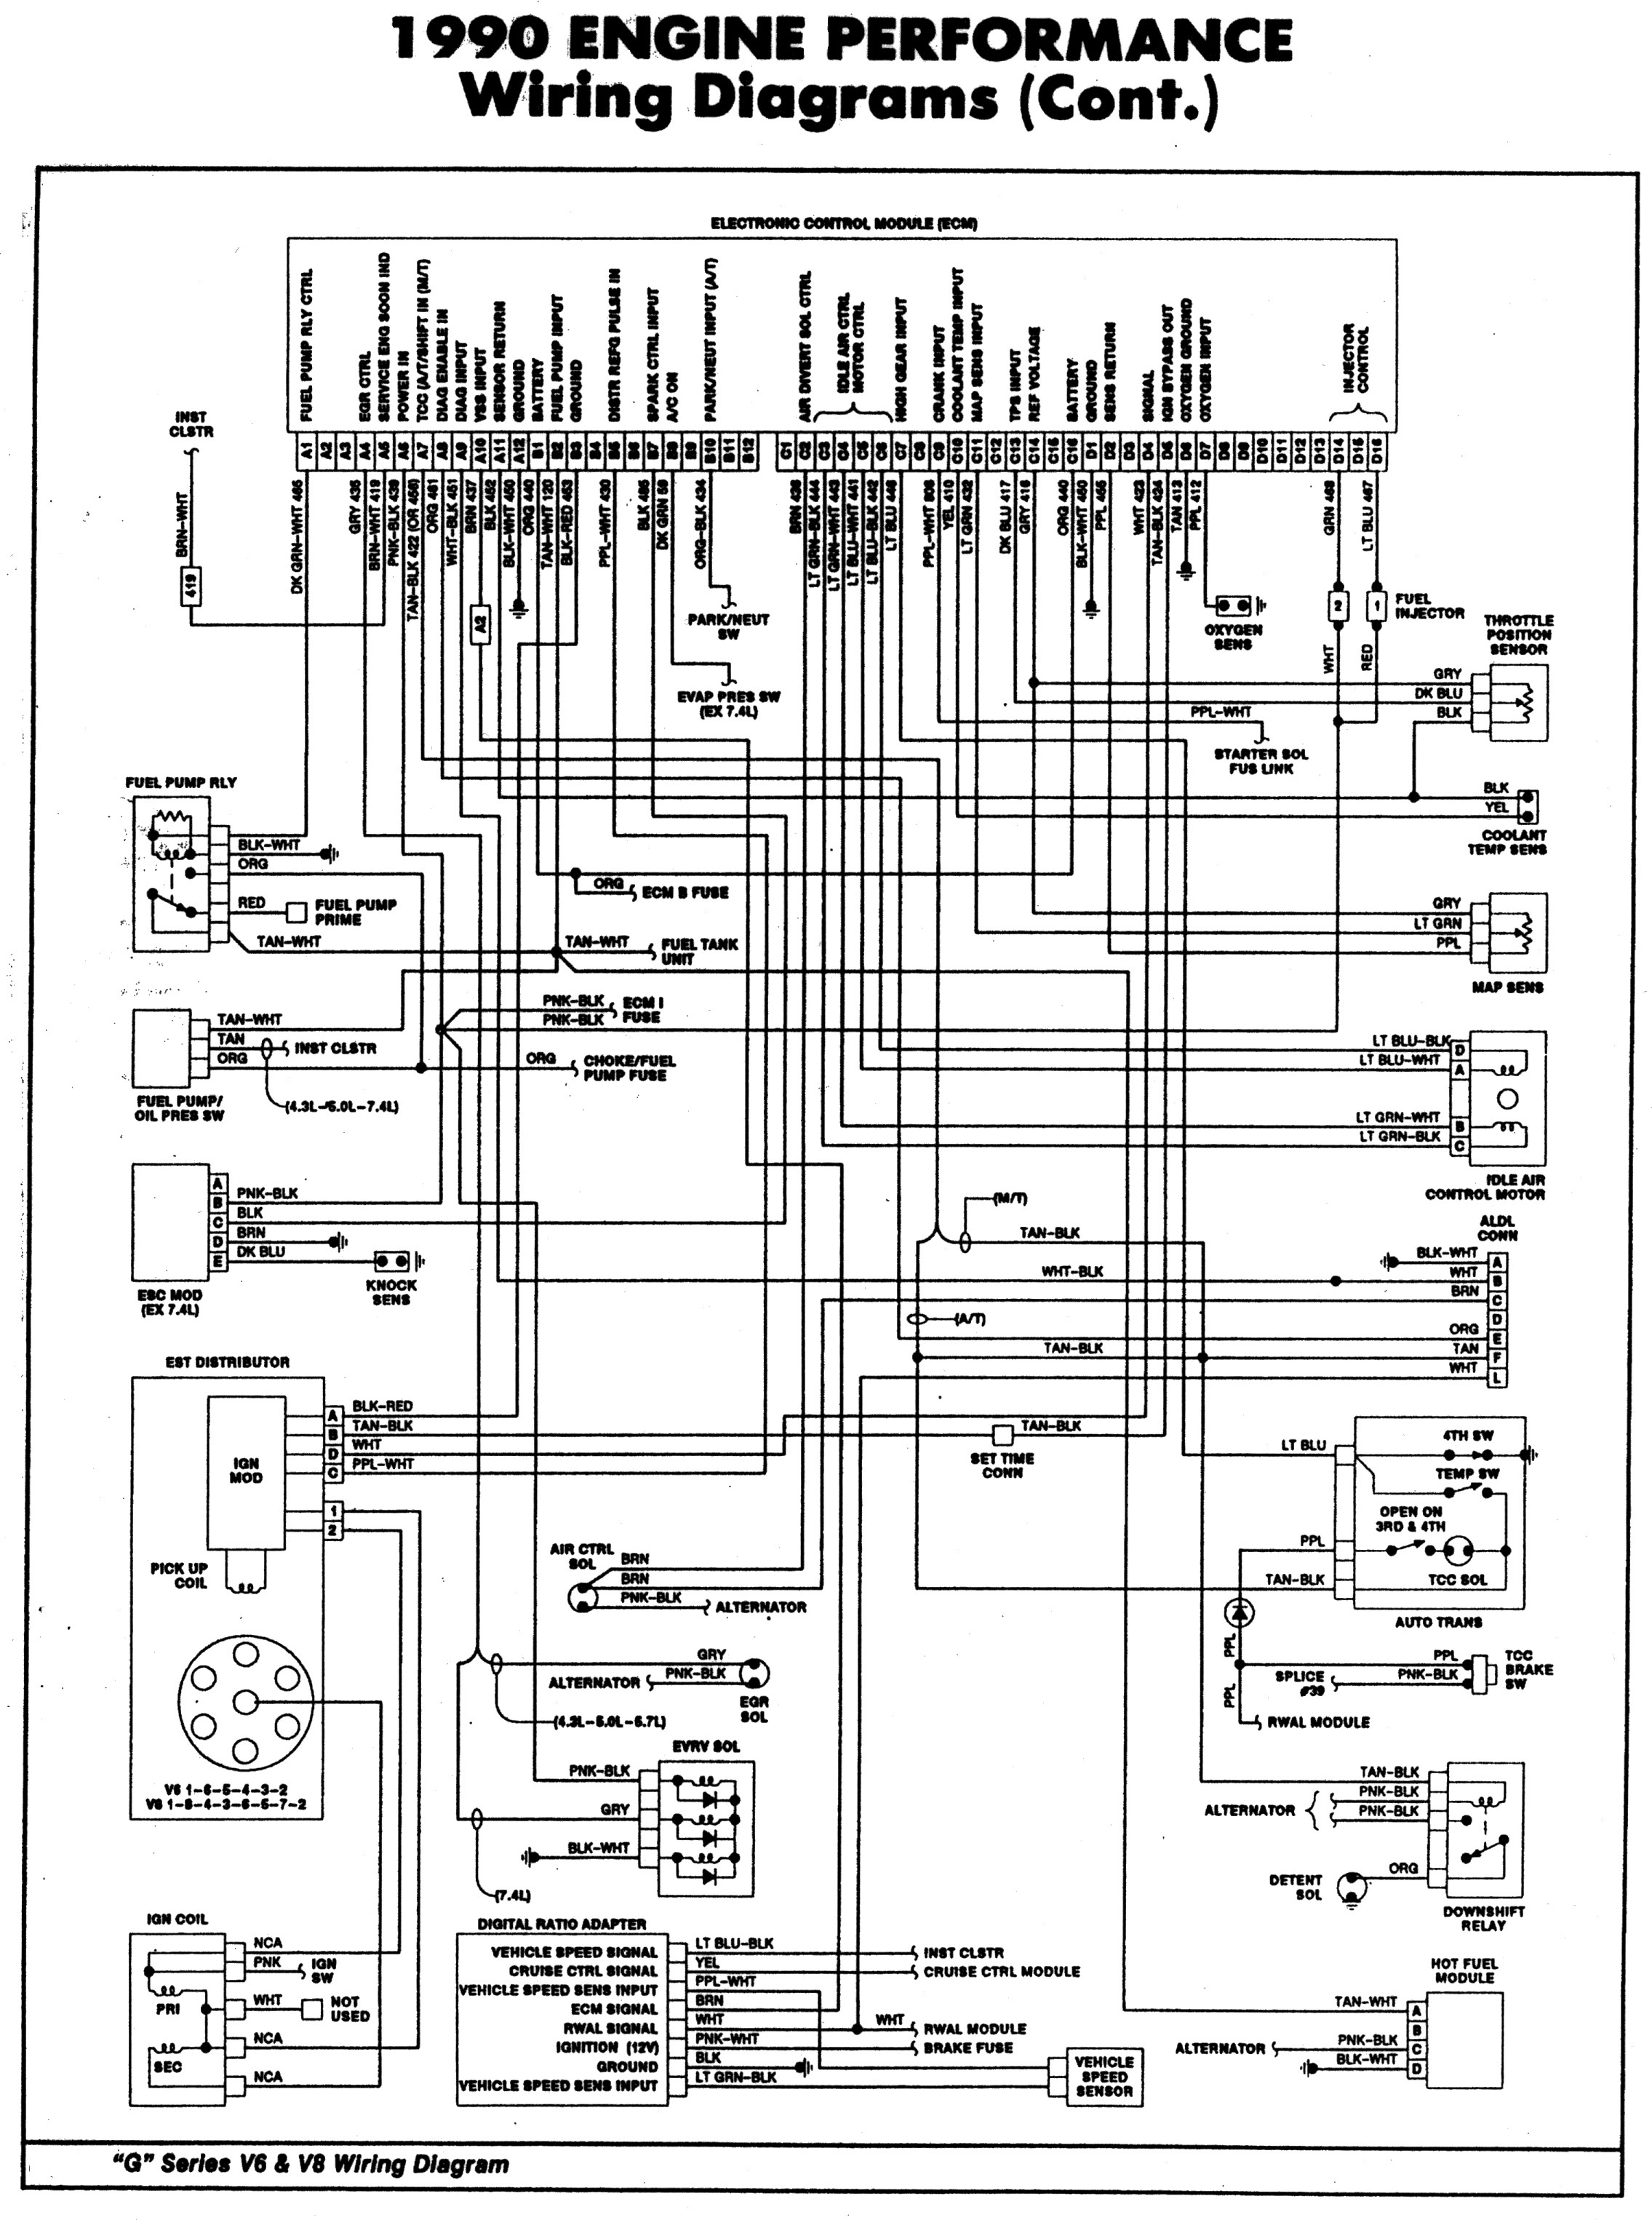 hight resolution of c1500 4 3l v6 wiring diagram wiring diagram part 1992 chevy c1500 4 3 wiring diagram